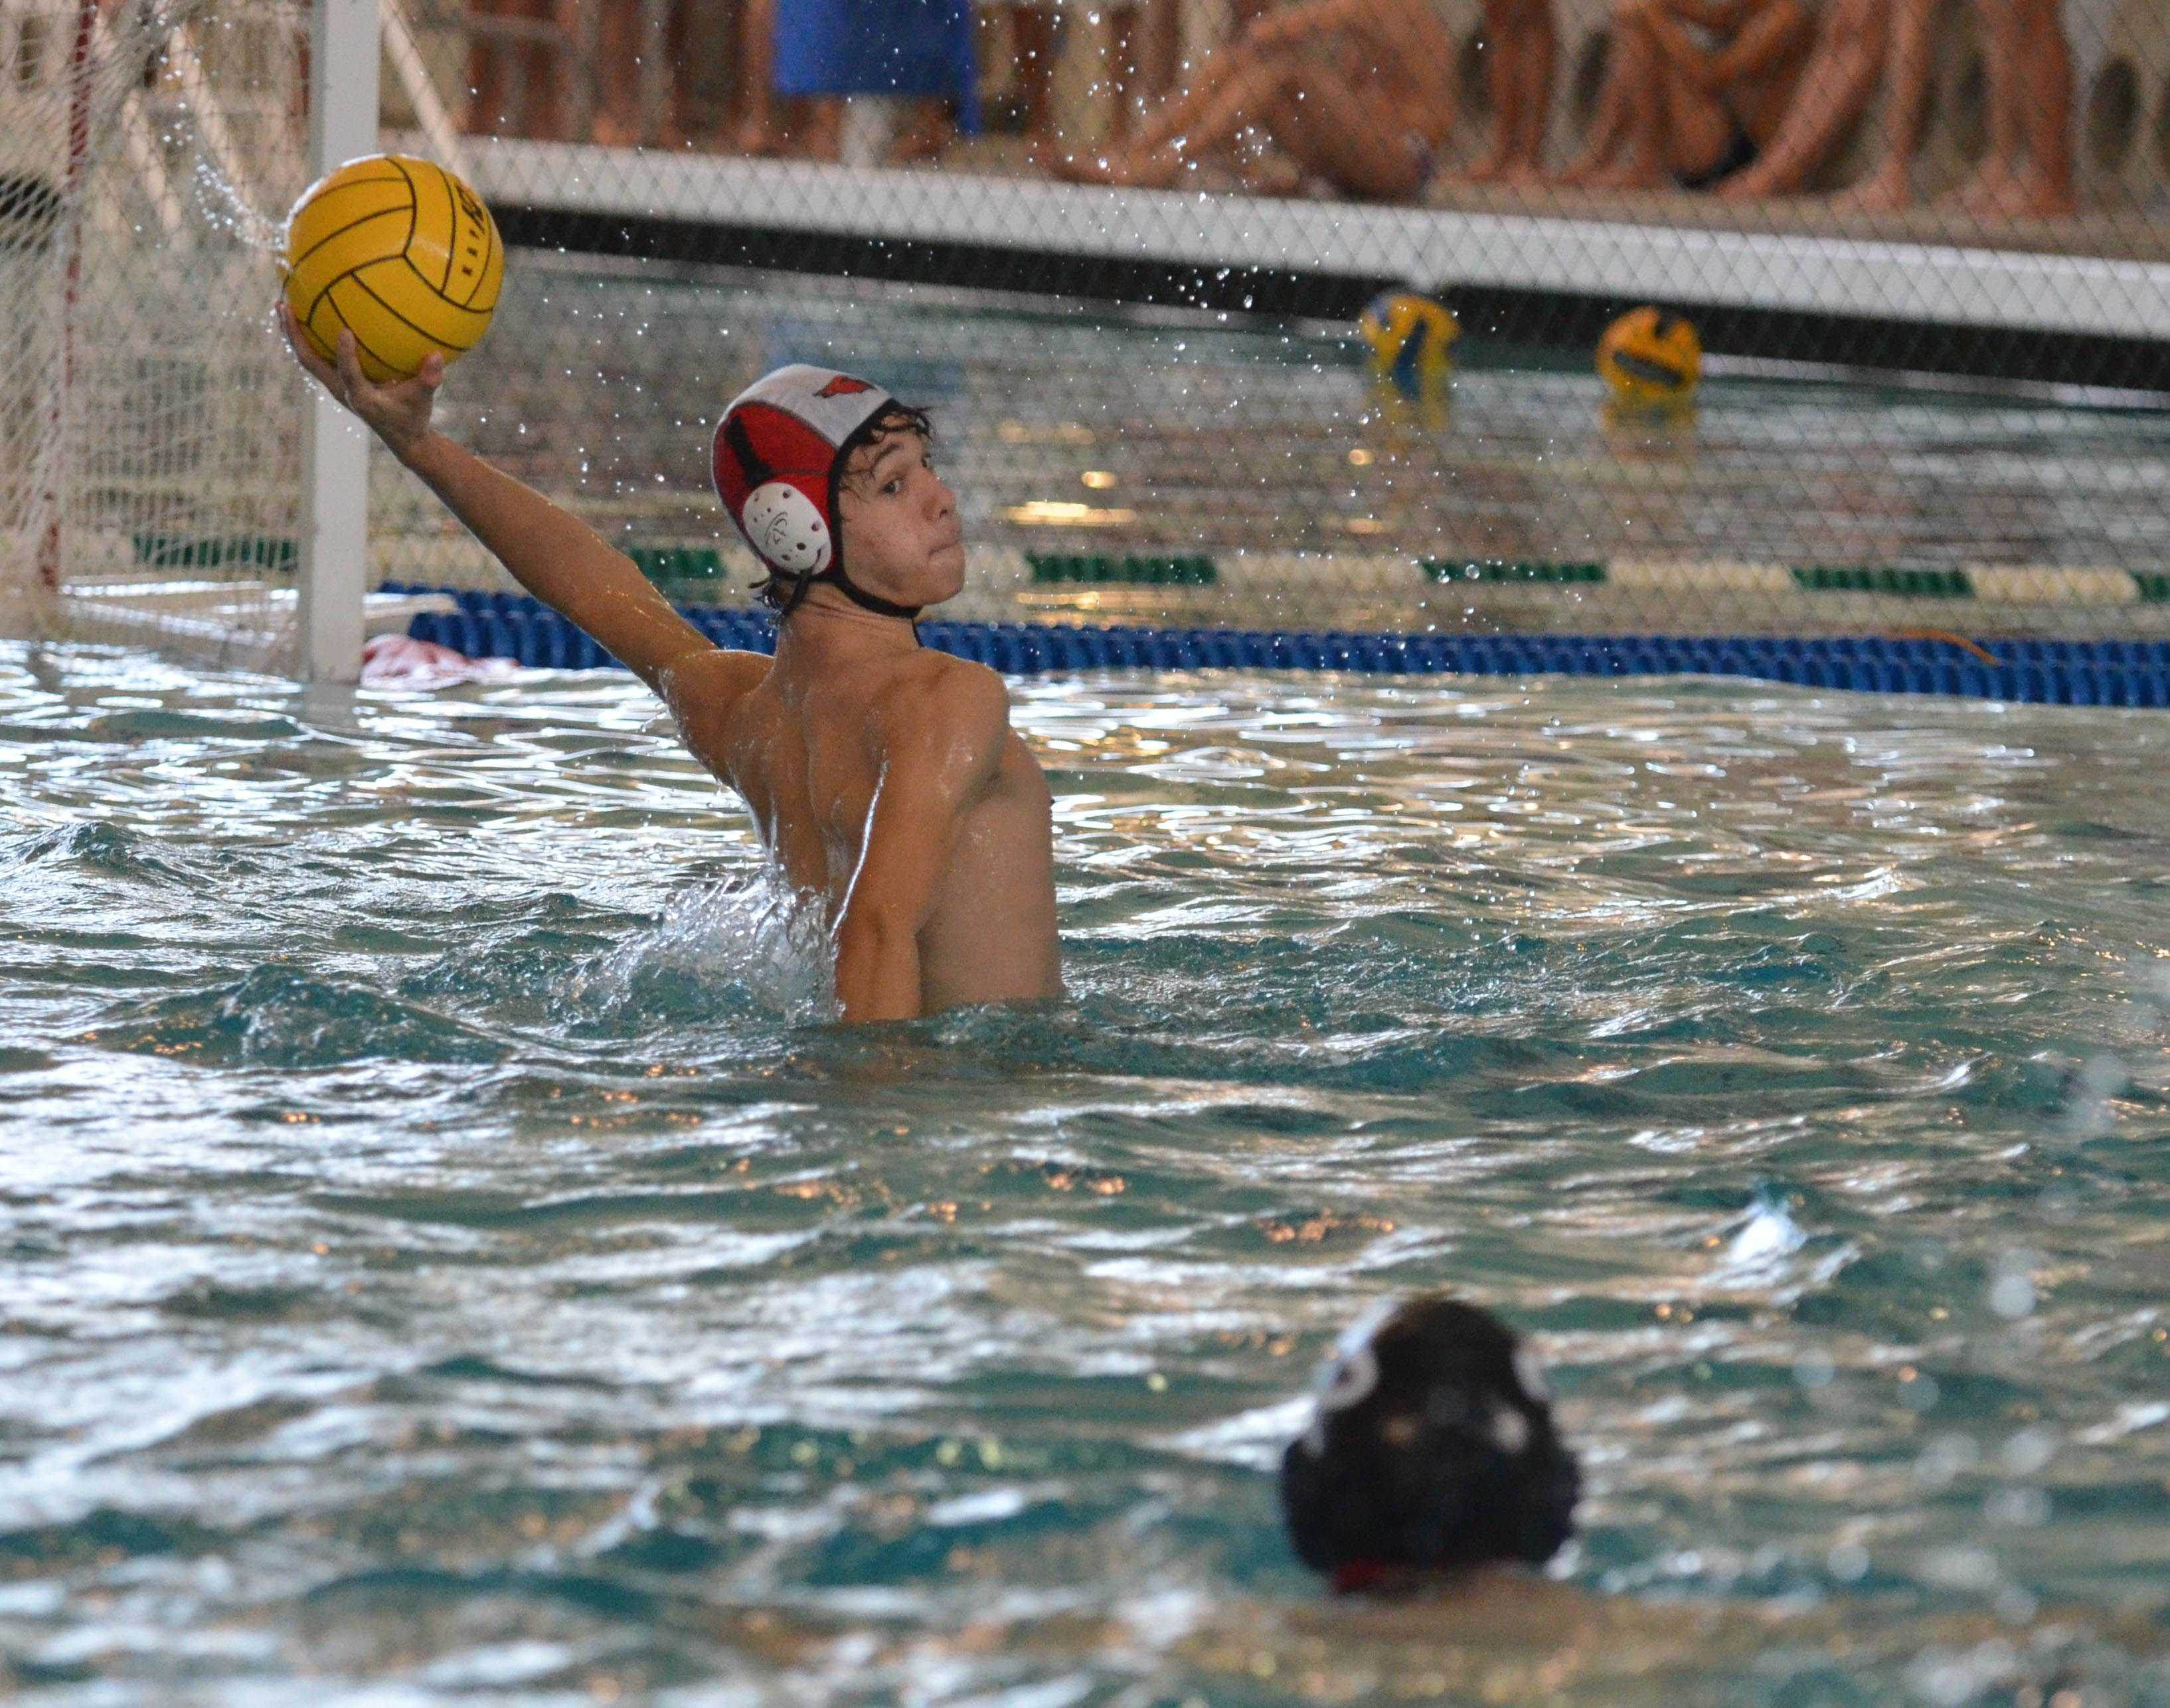 Junior Lee Longley shoots for a goal during a match at the Tualitan Tournament in early October.